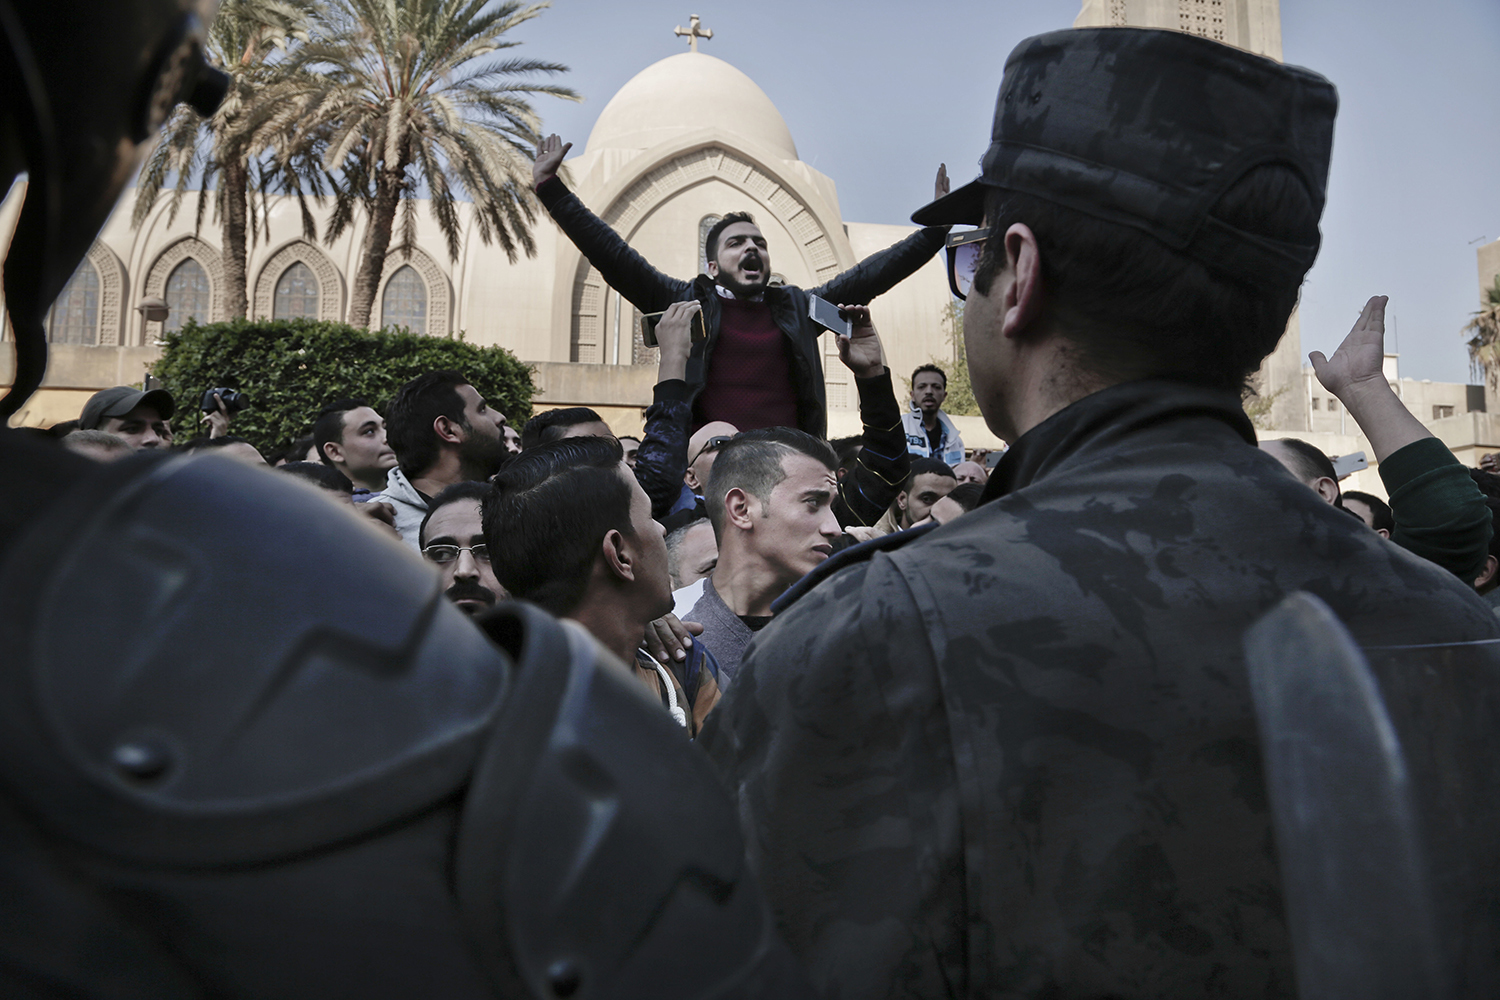 Coptic Christians chant slogans during a protest outside the St. Mark Cathedral in central Cairo, following a deadly bombing, Sunday, Dec. 11, 2016. The blast at Egypt's main Coptic Christian cathedral killed dozens of people and wounded many others on Sunday, according to Egyptian state television, making it one of the deadliest attacks carried out against the religious minority in recent memory. (AP Photo/Nariman El-Mofty)